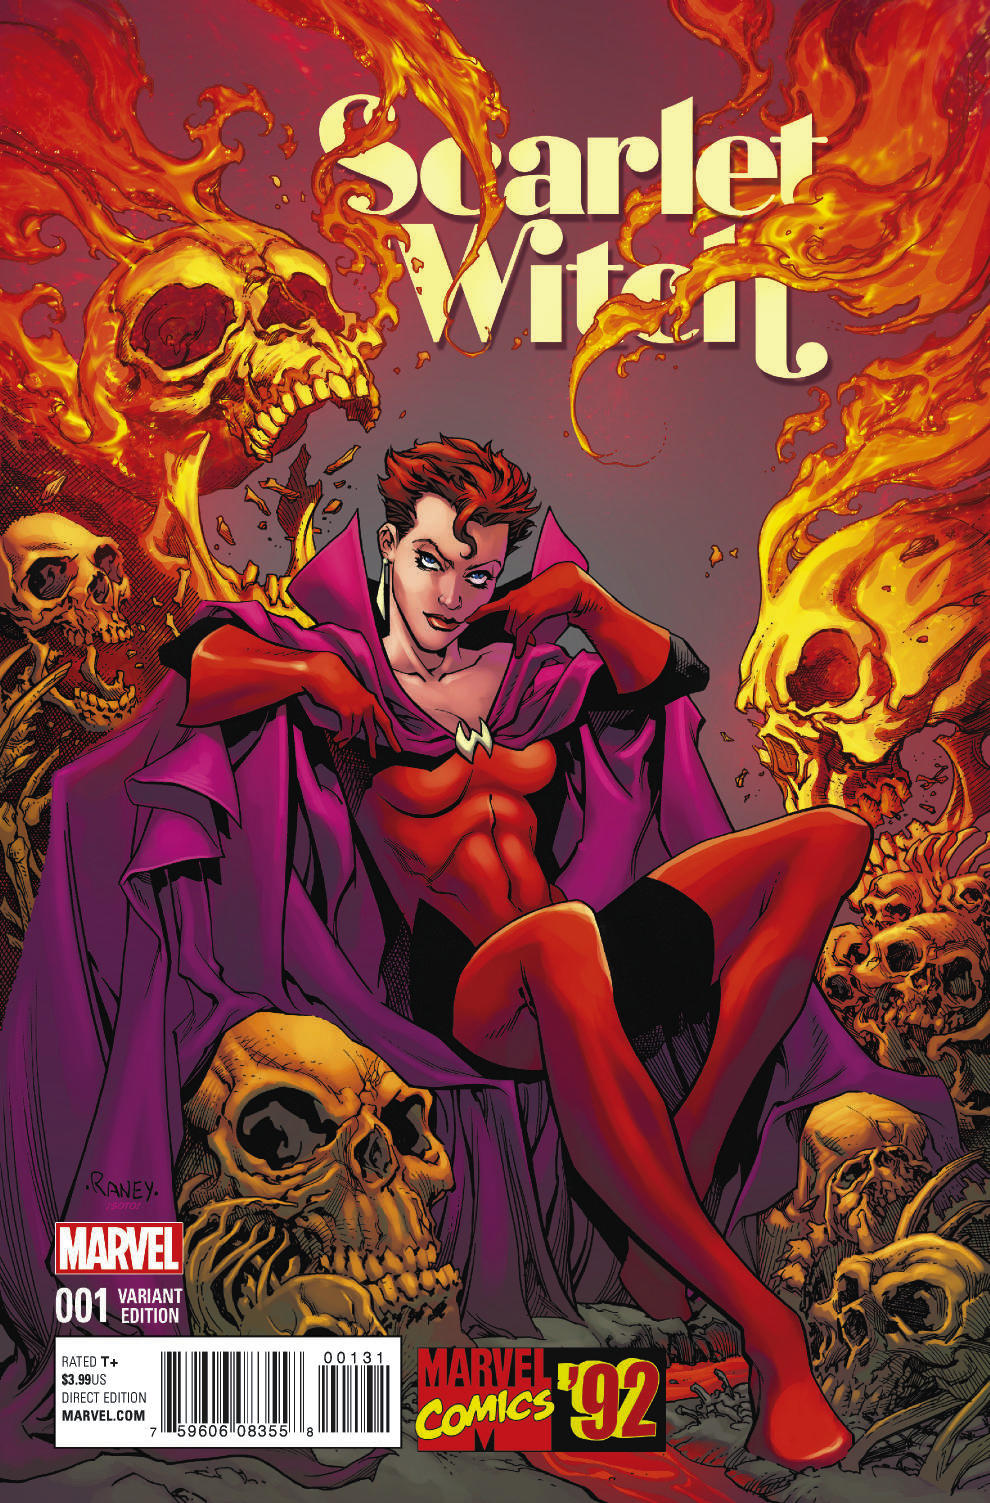 Scarlet_Witch_1_Raney_Marvel_92_Variant